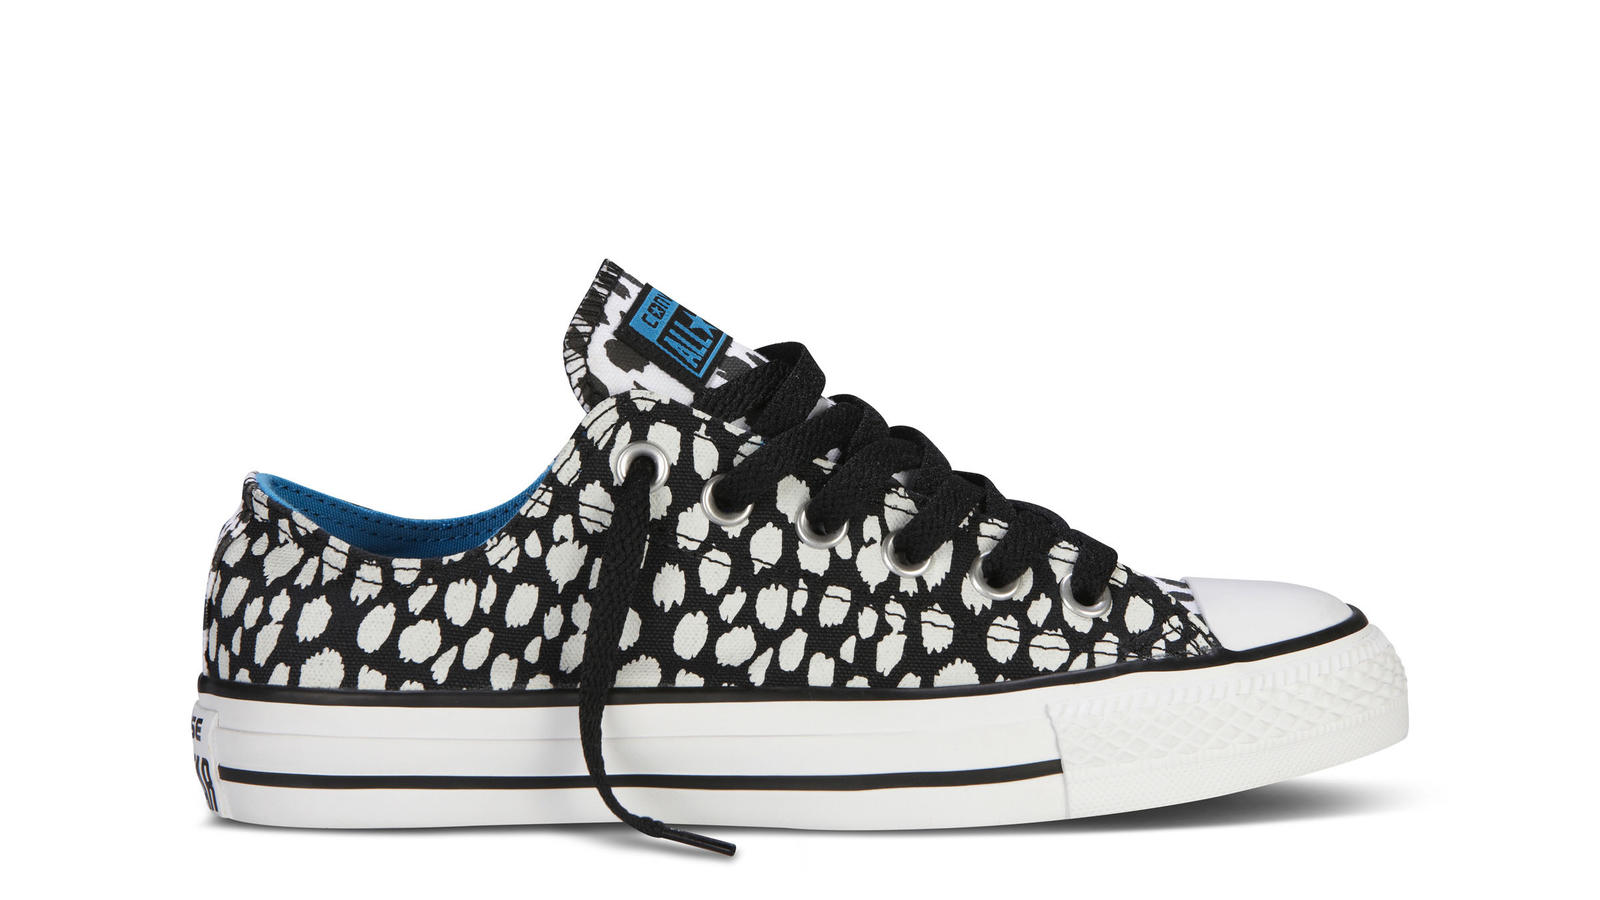 Converse Fall 2013 All Star Footwear Collections Celebrate